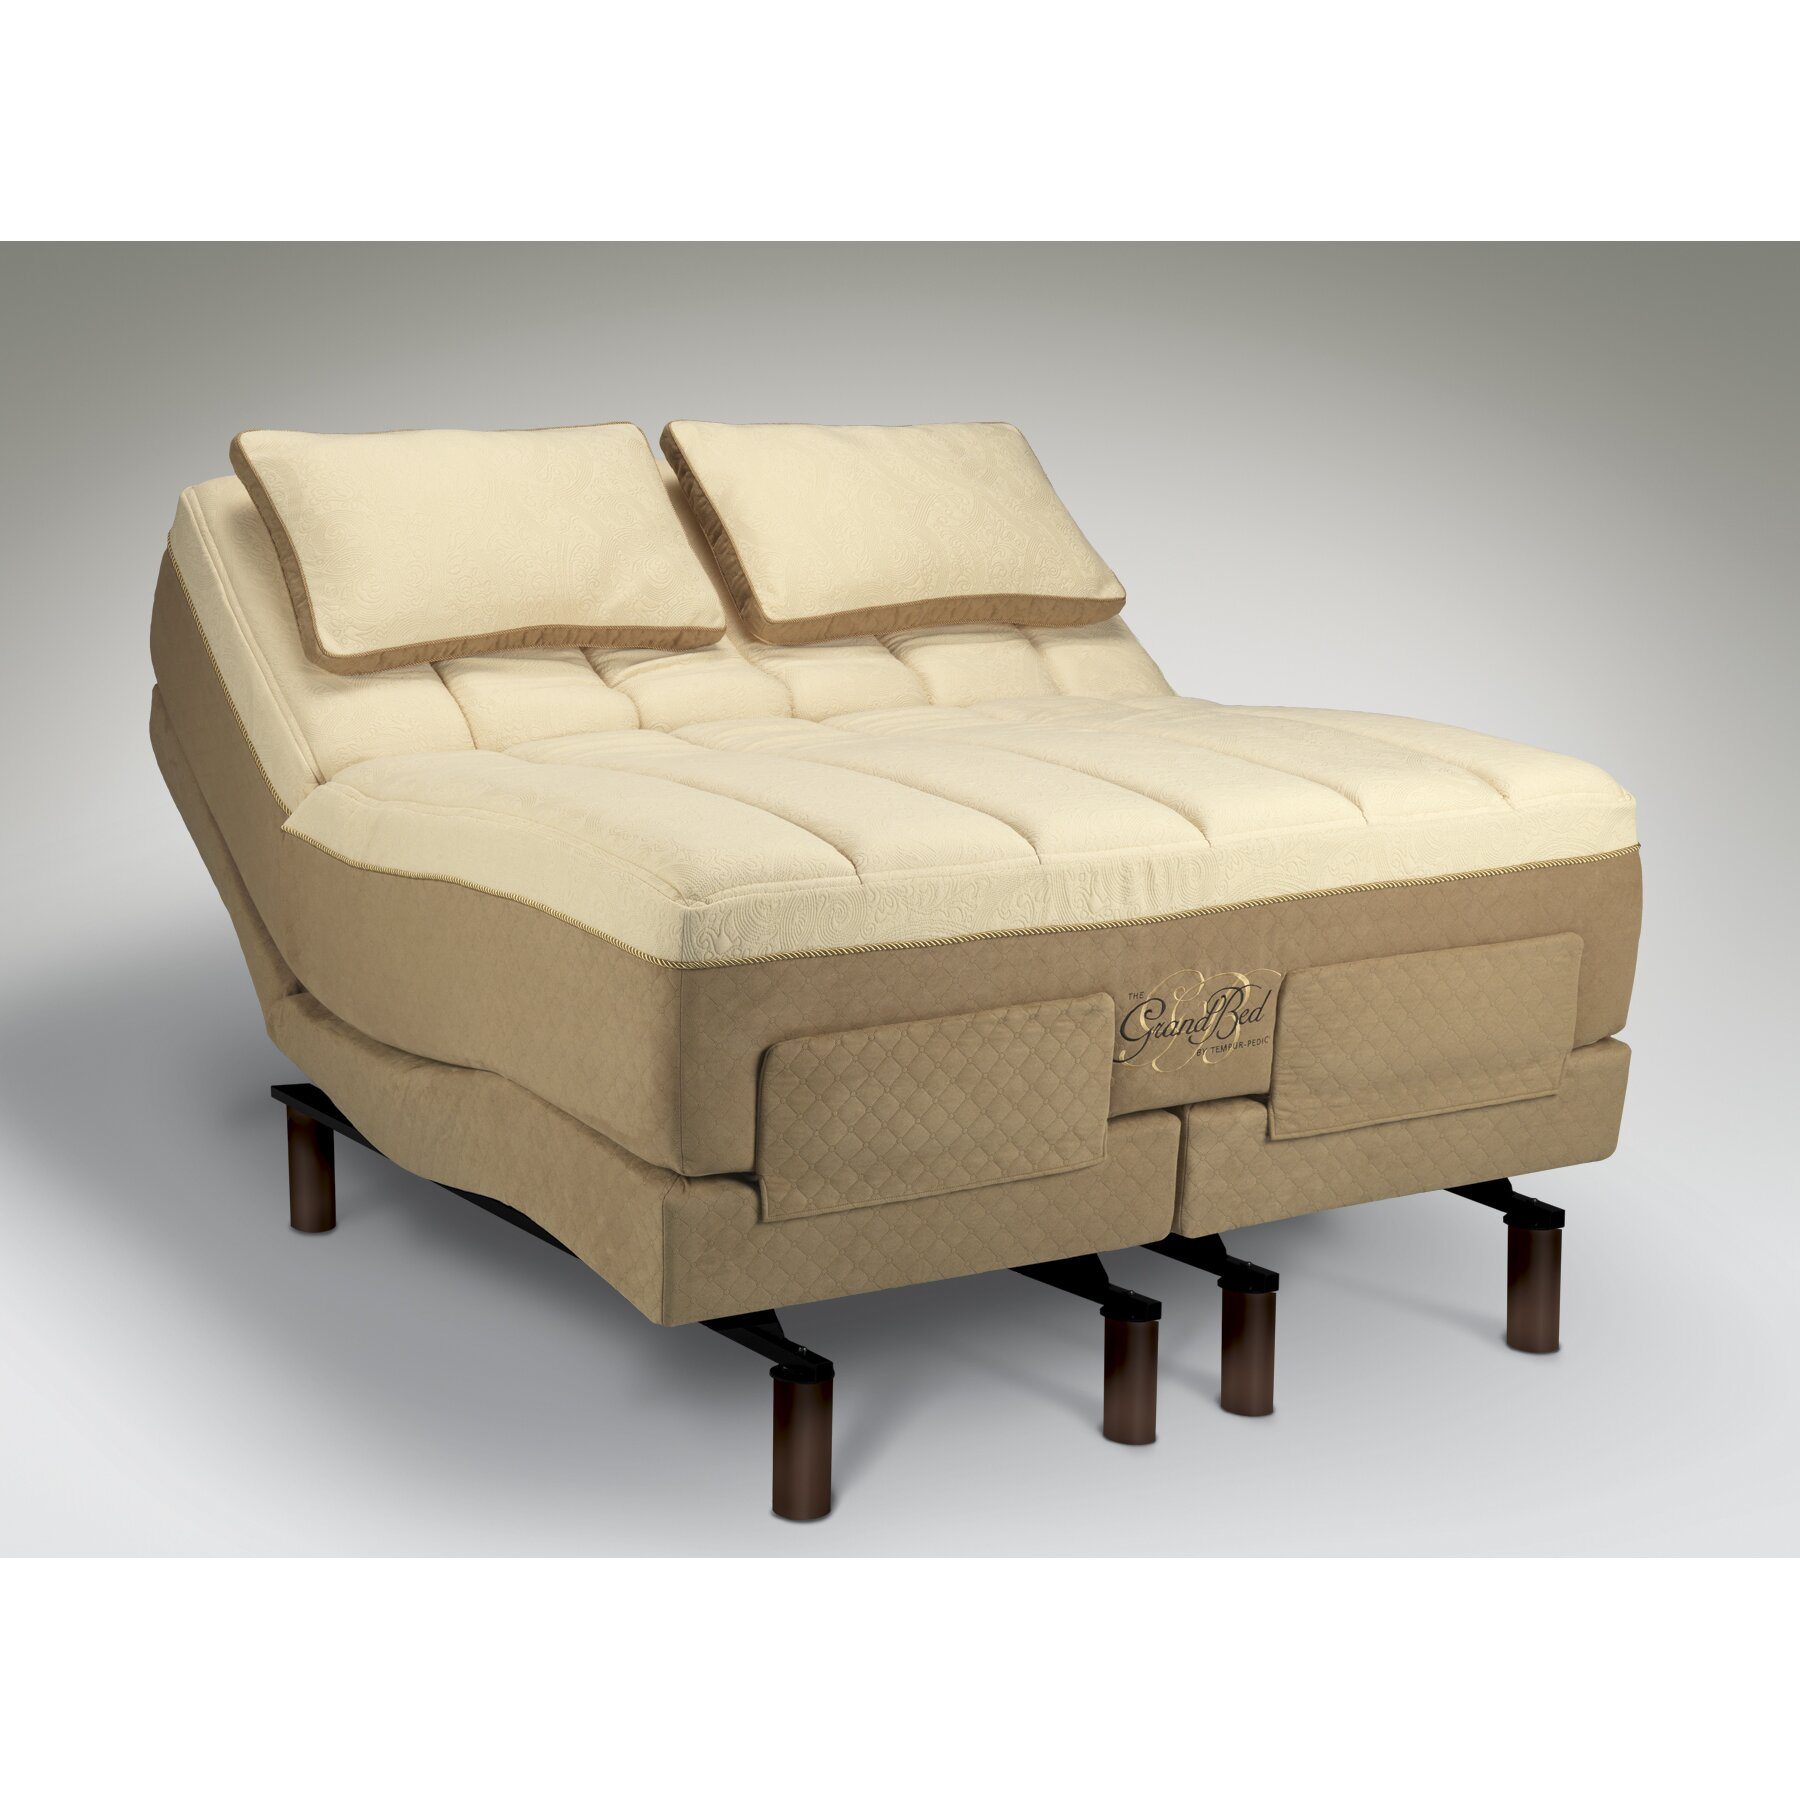 Twin Xl Adjustable Mattress